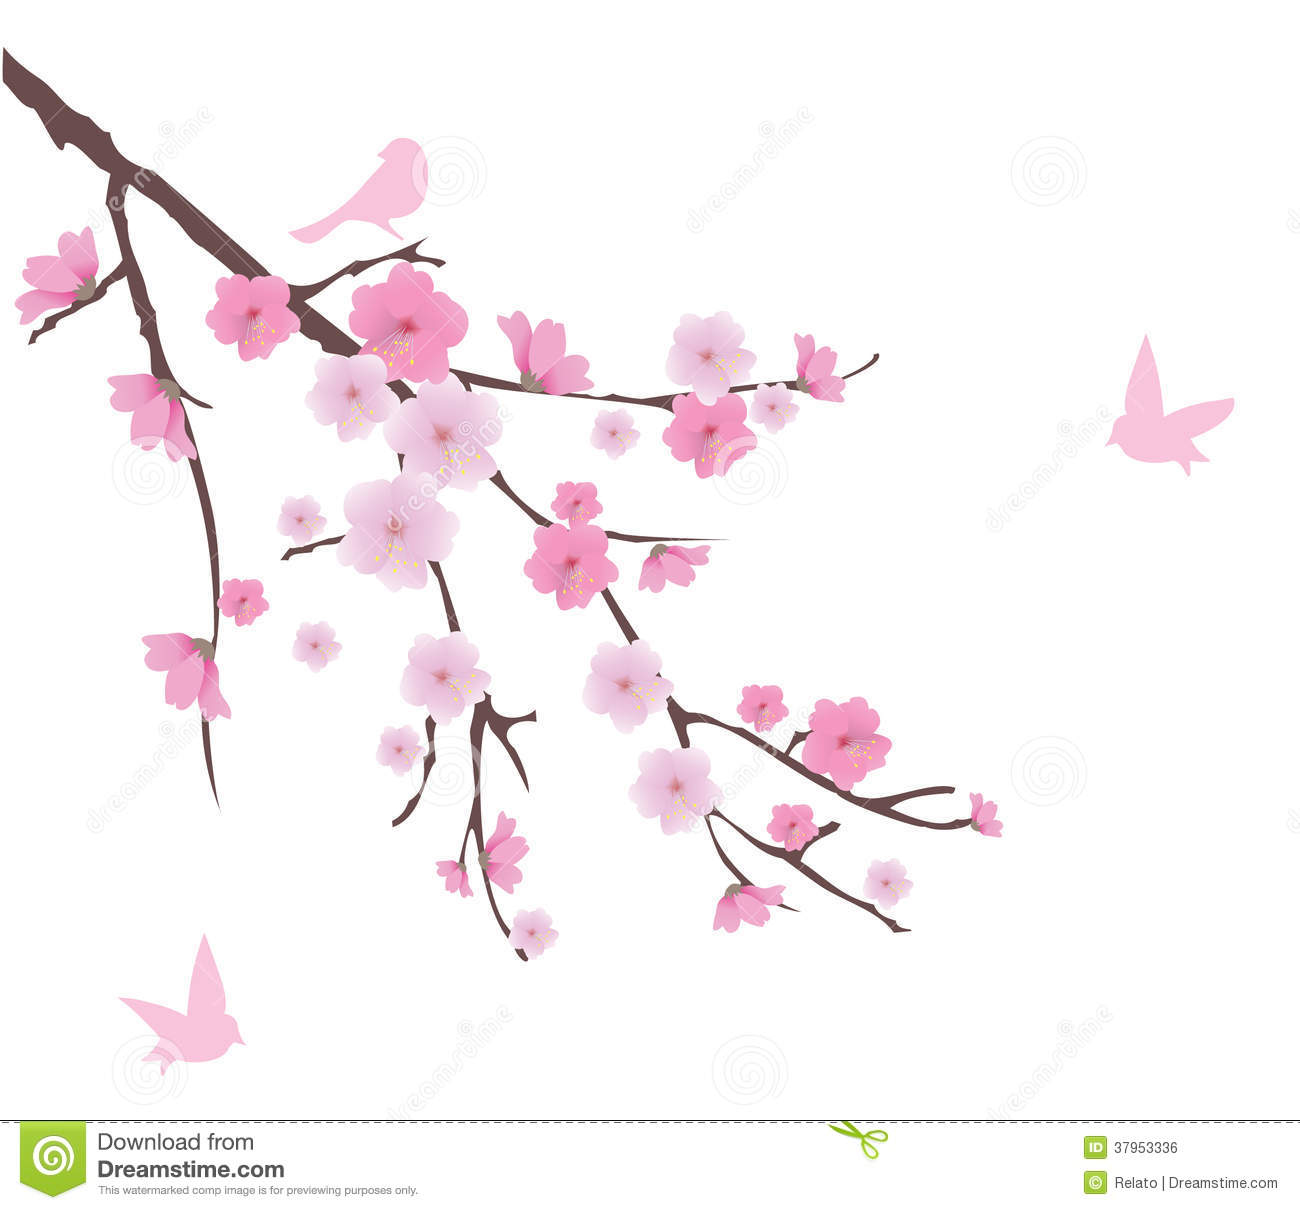 Cherry Blossom Royalty Free Stock Image - Image: 37953336